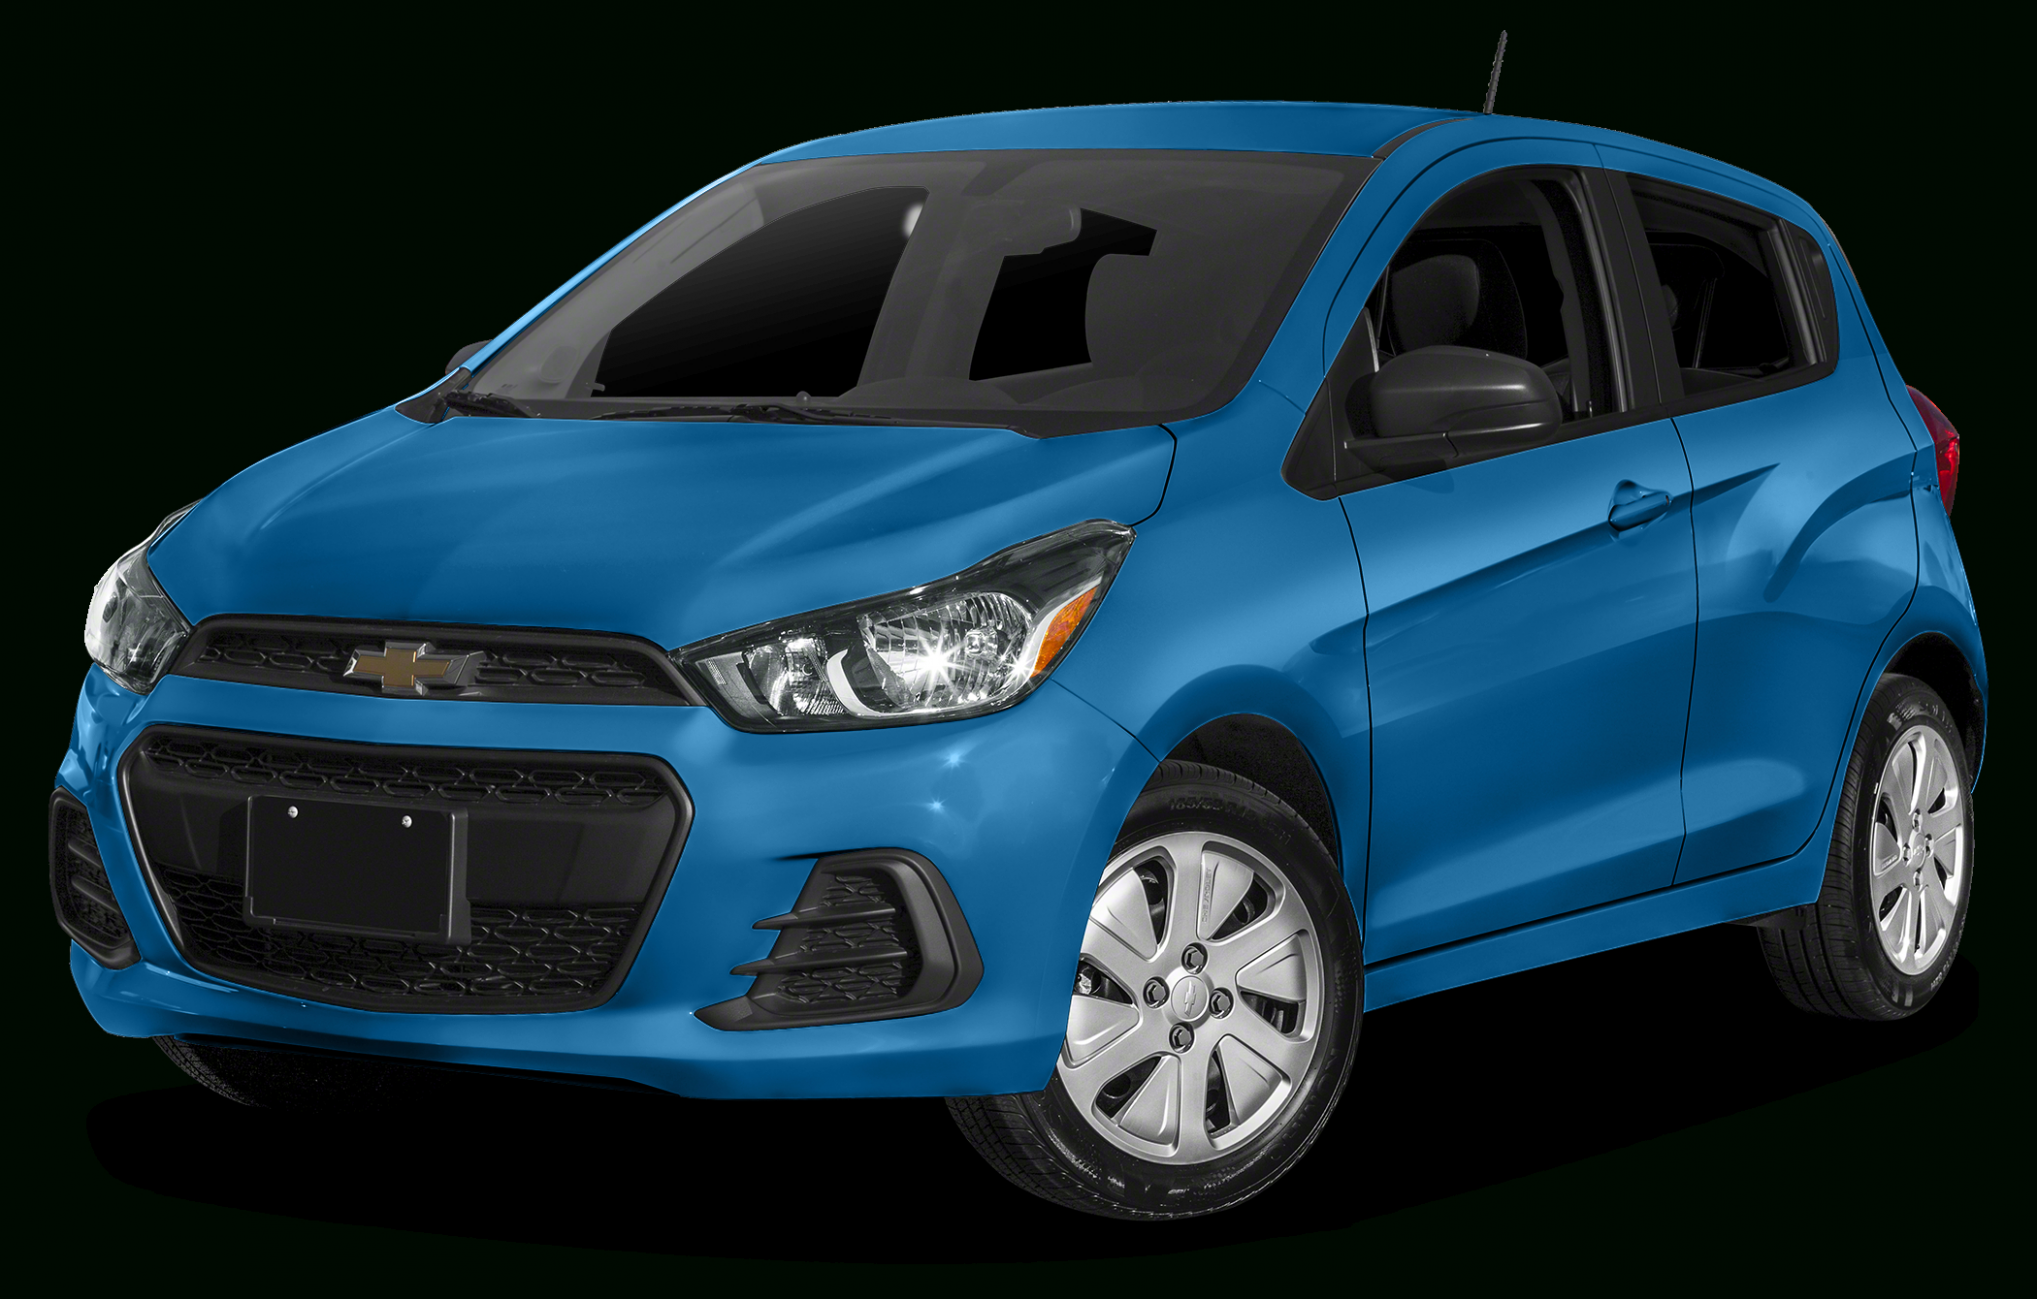 8 Picture Giá Xe Chevrolet Spark 2020 in 2020 Chevrolet